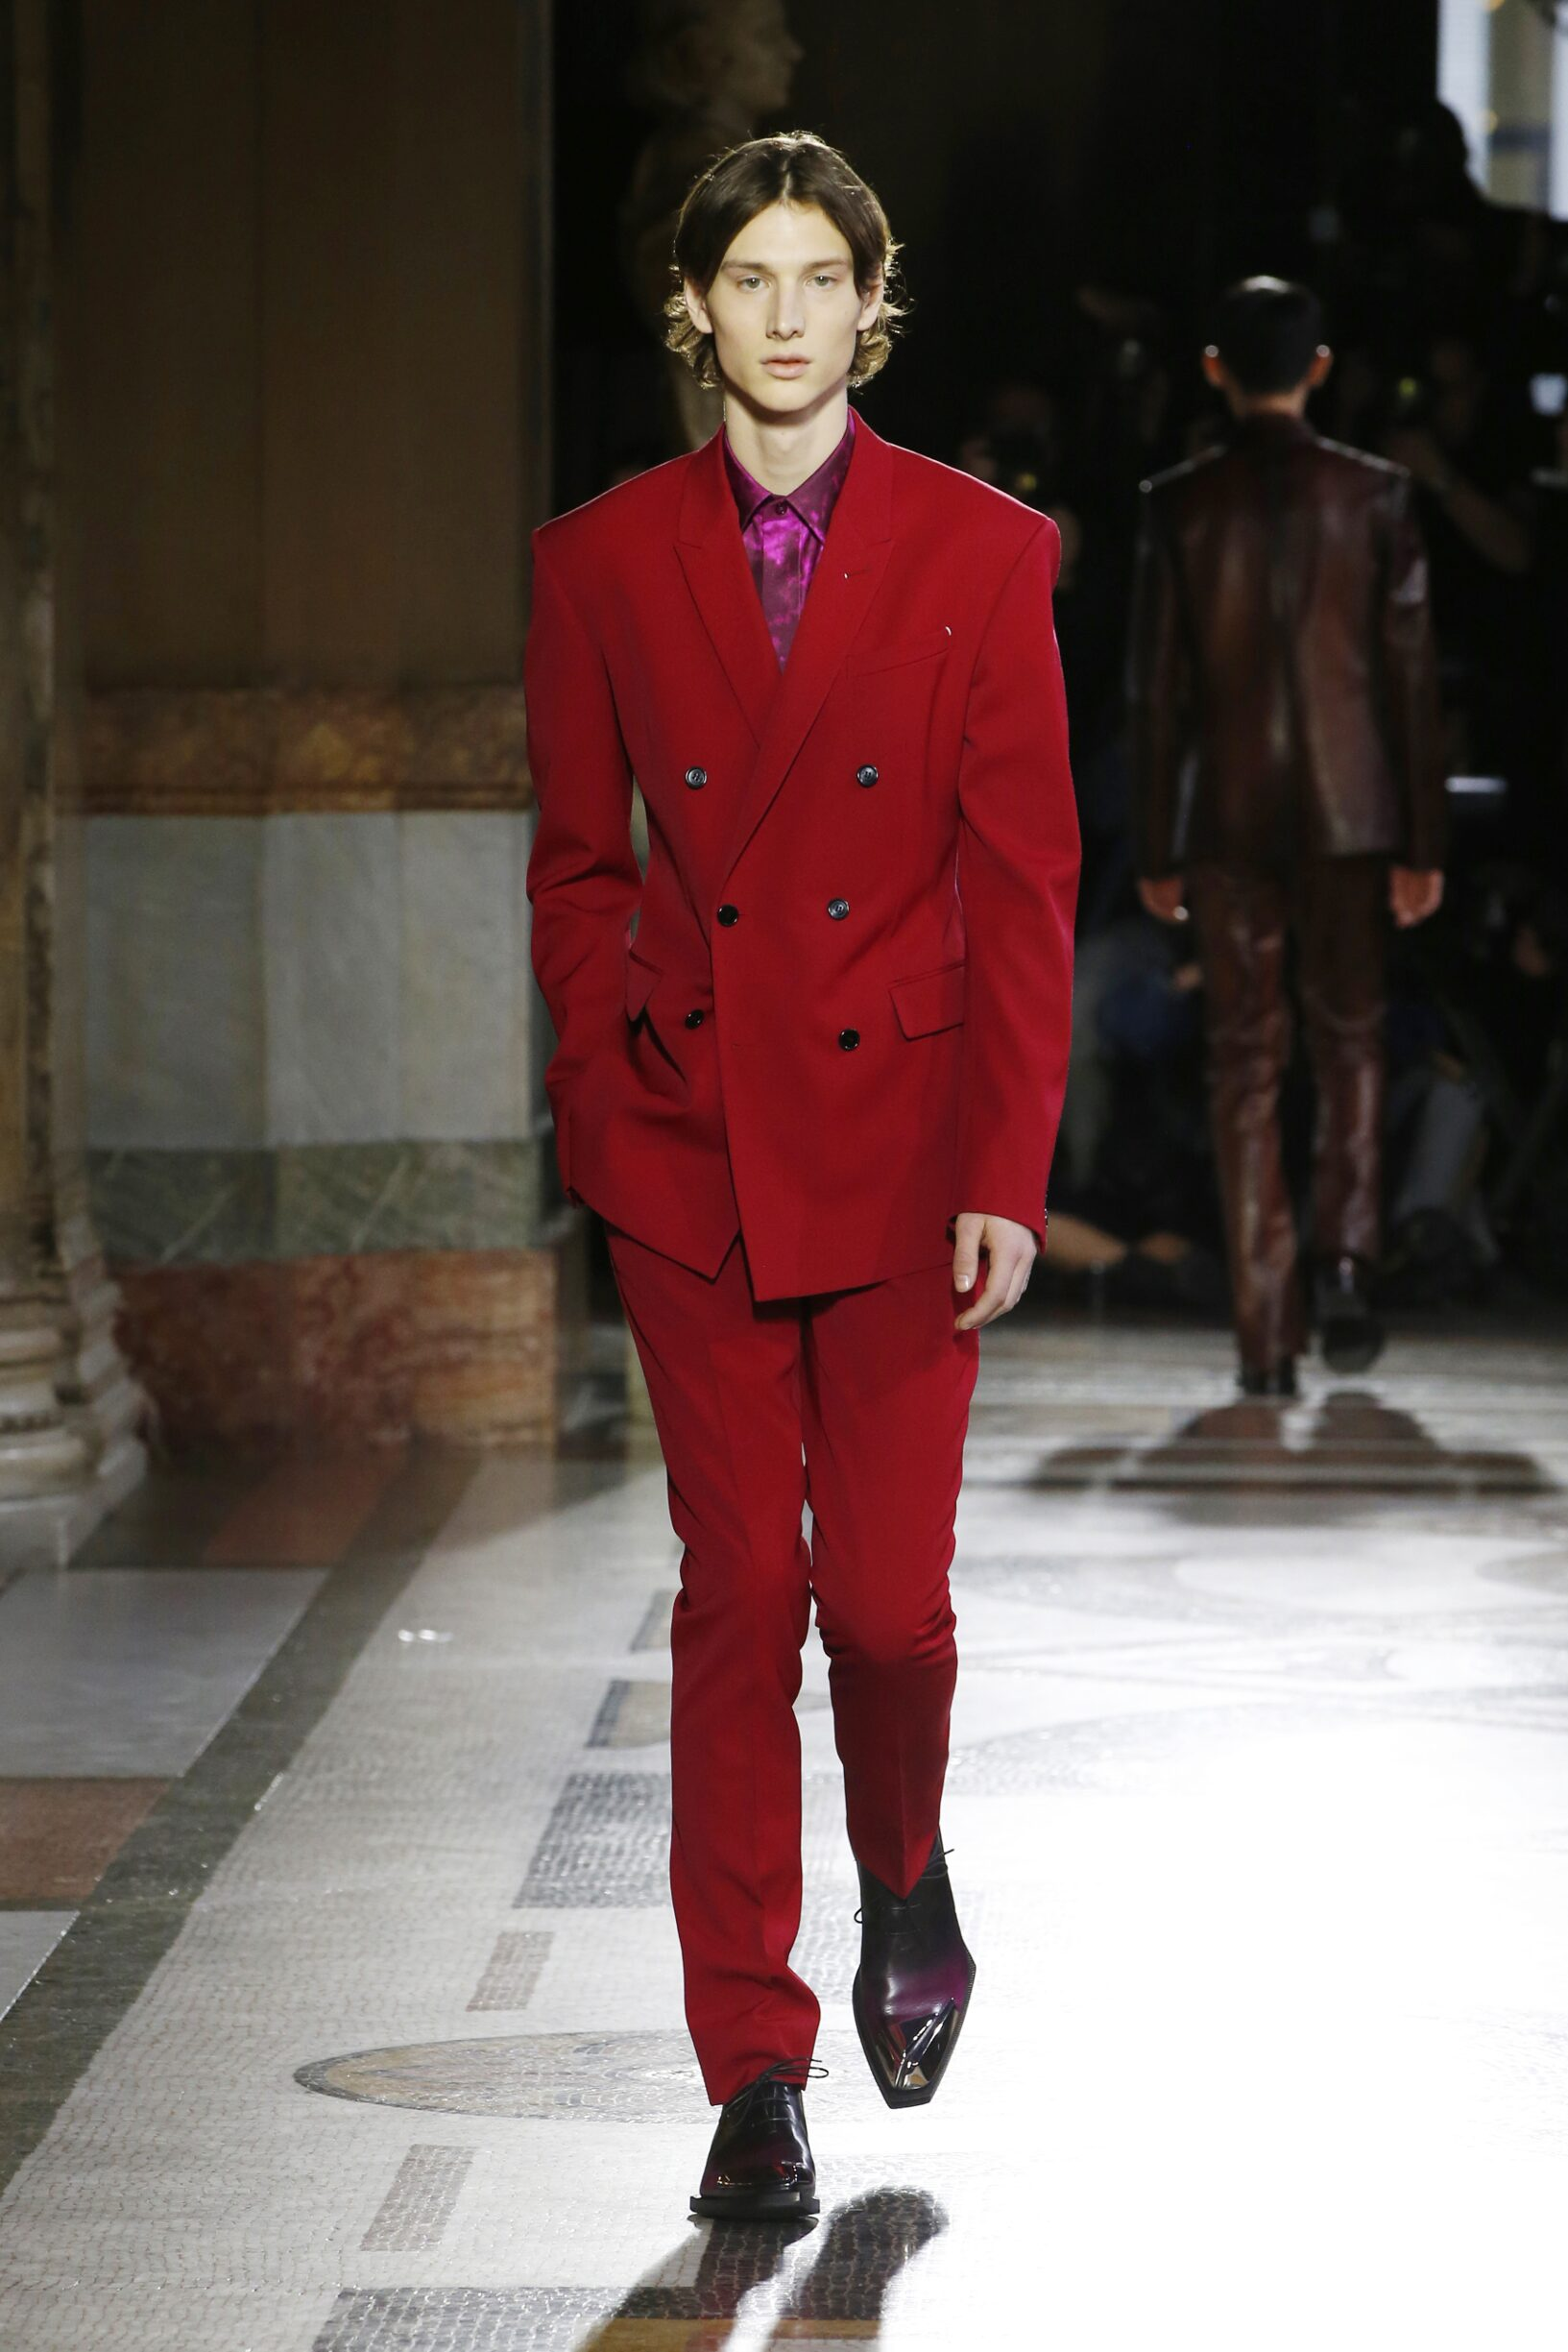 FW 2019-20 Berluti Fashion Show